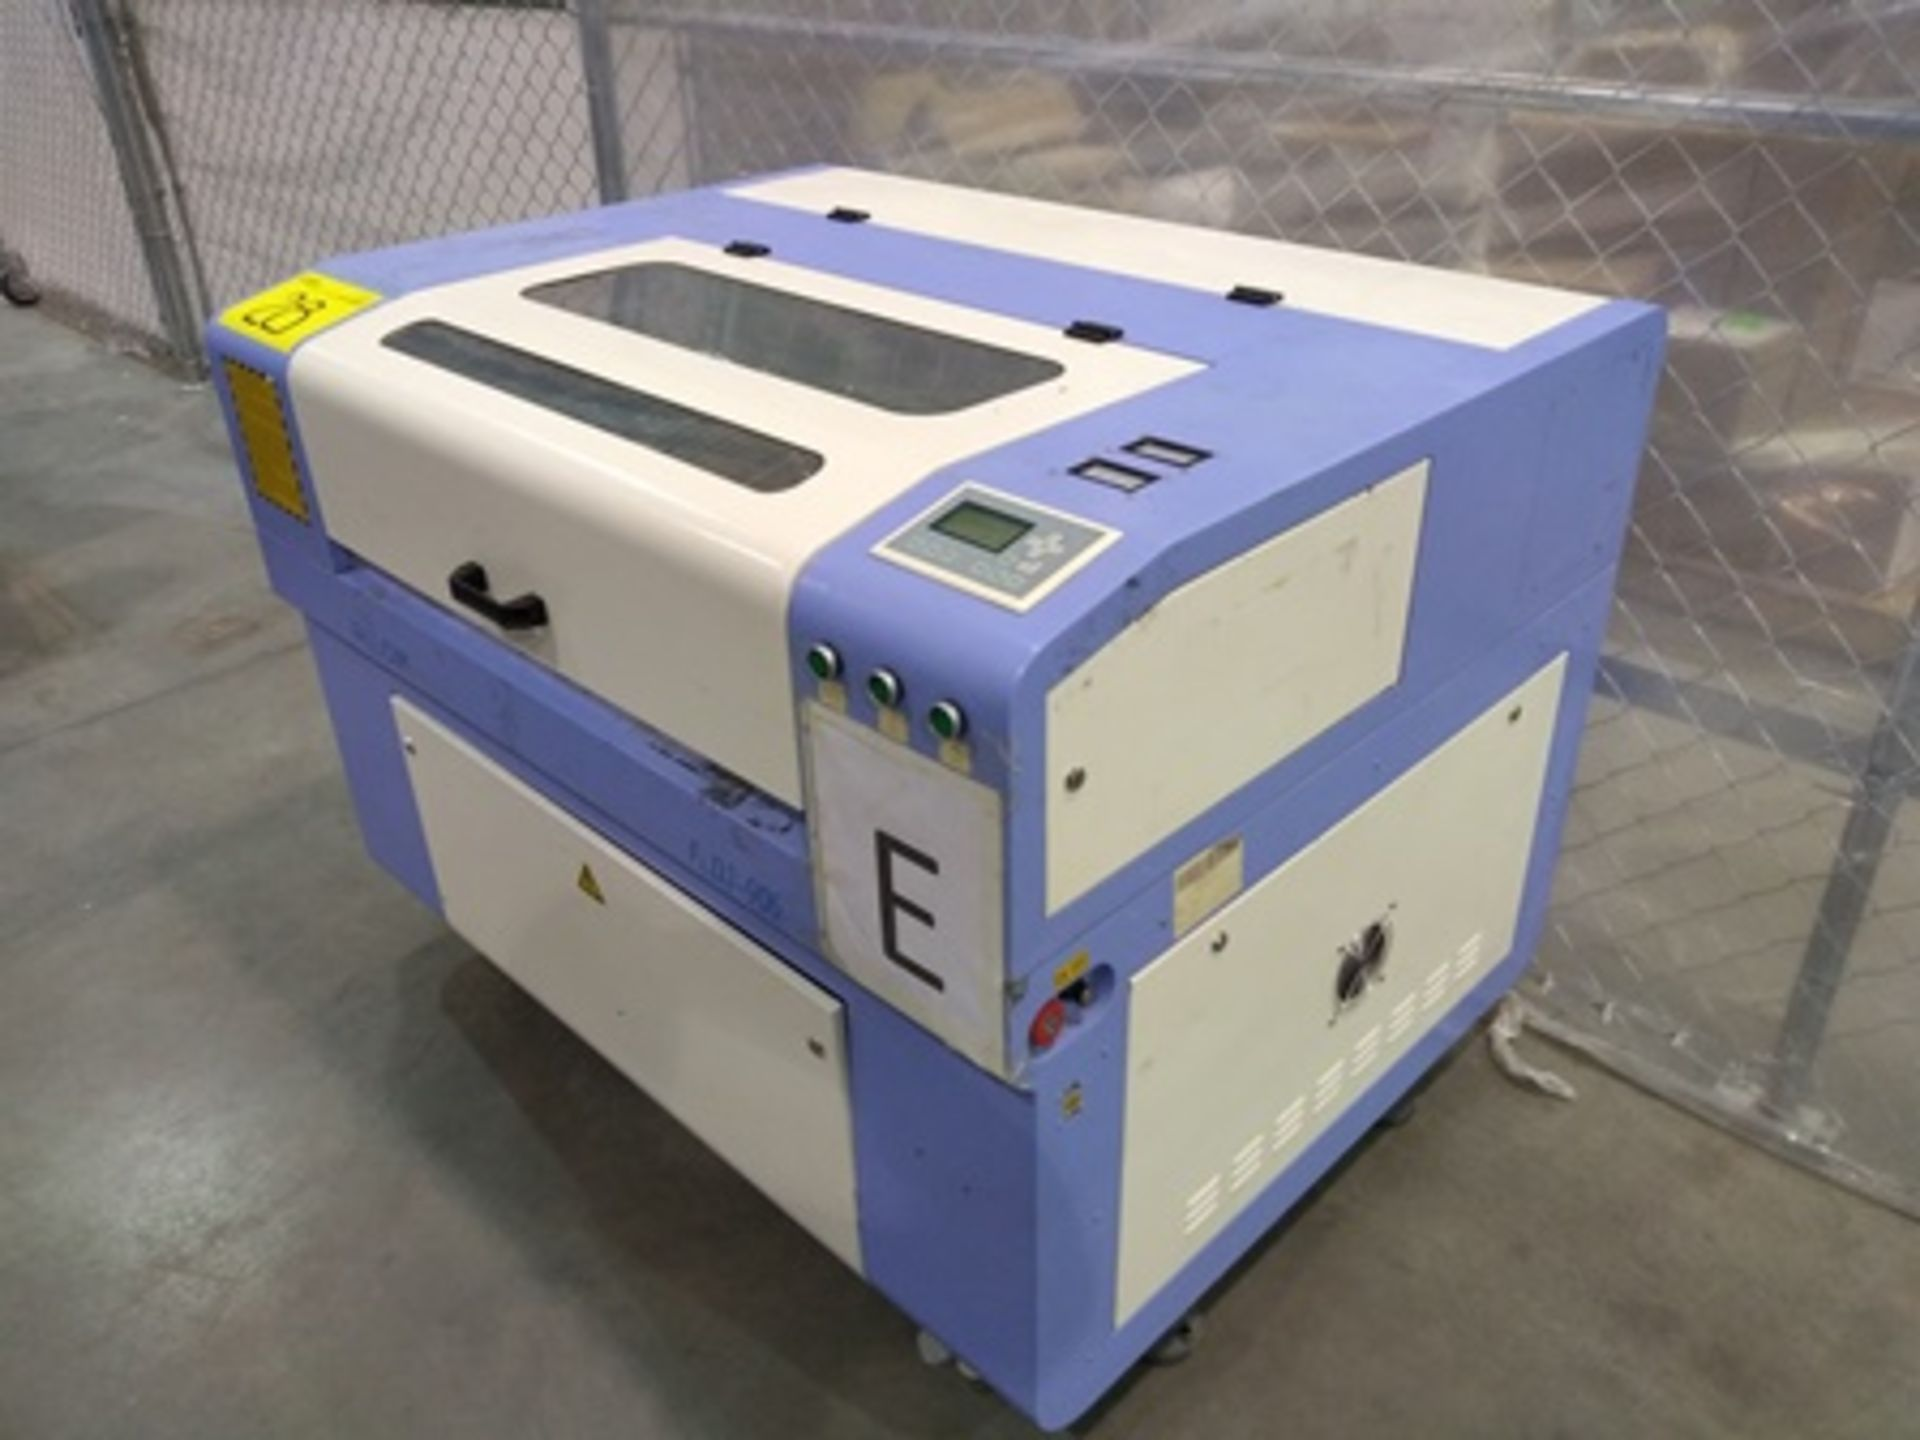 Lot 28 - 2016 Phillican CO2 laser engraver and cutting machine, model 6090. Laser power: 80x2w, 2Kw, series 2